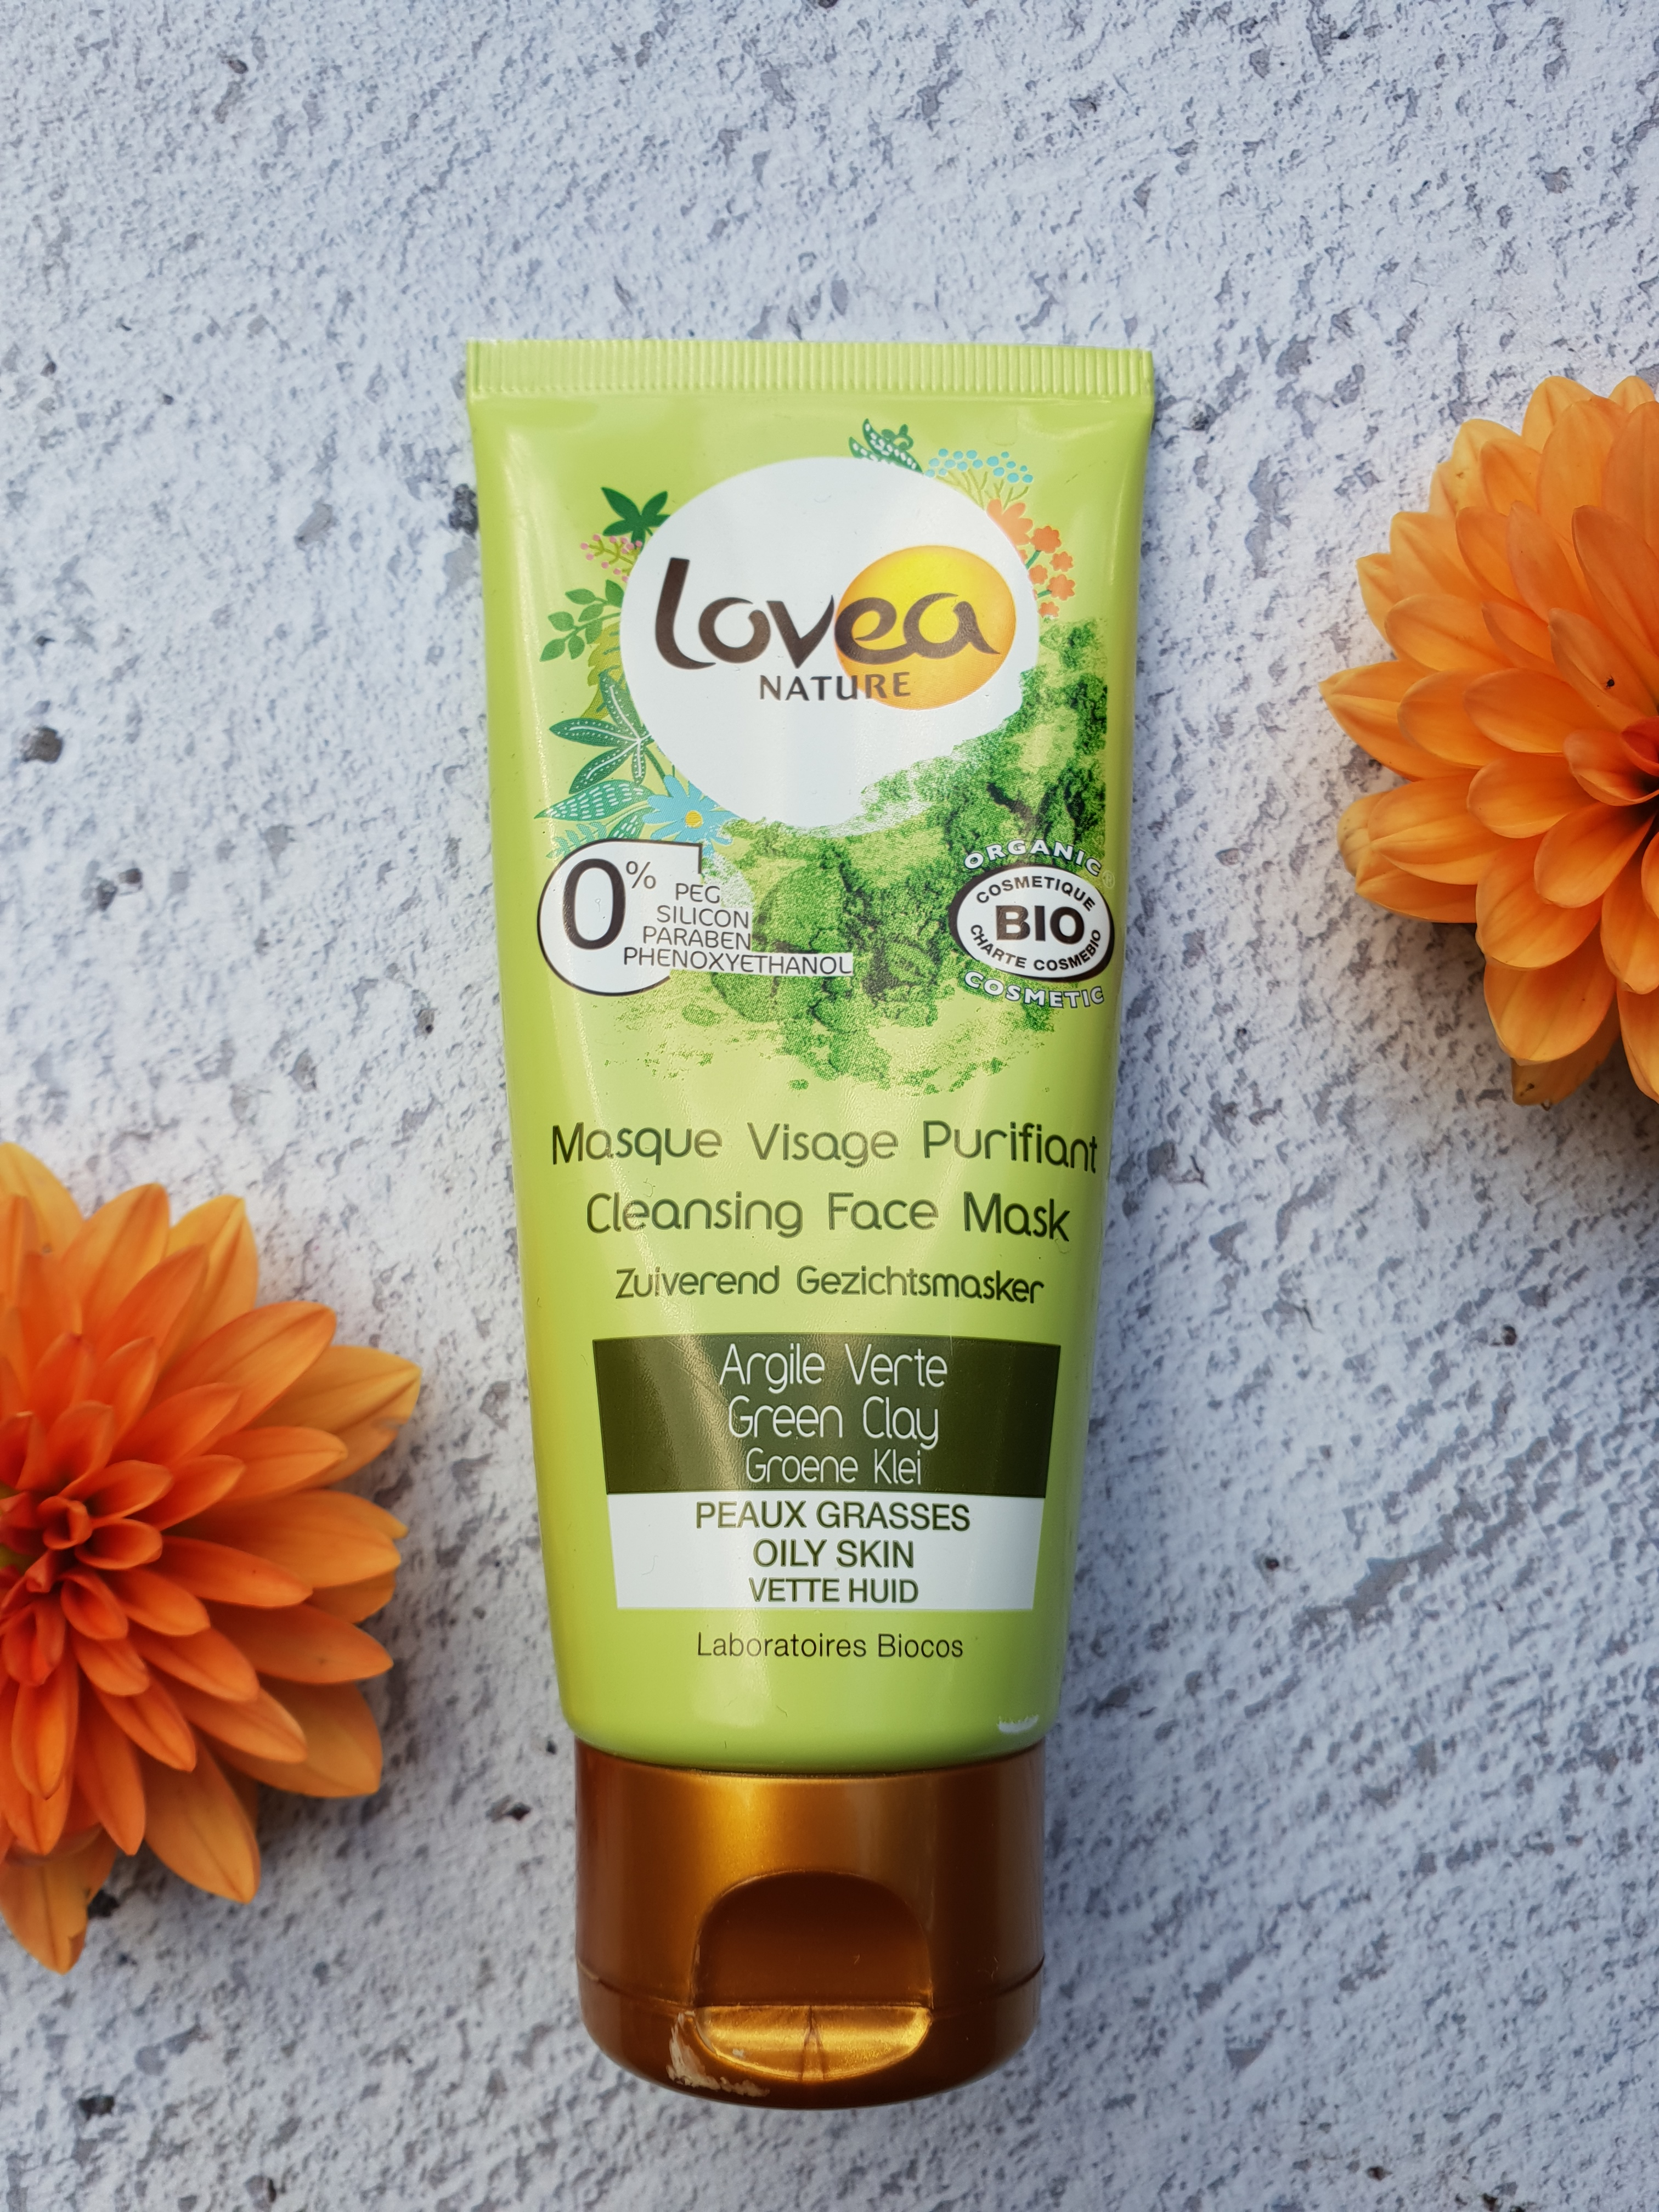 Lovea Green Clay mask